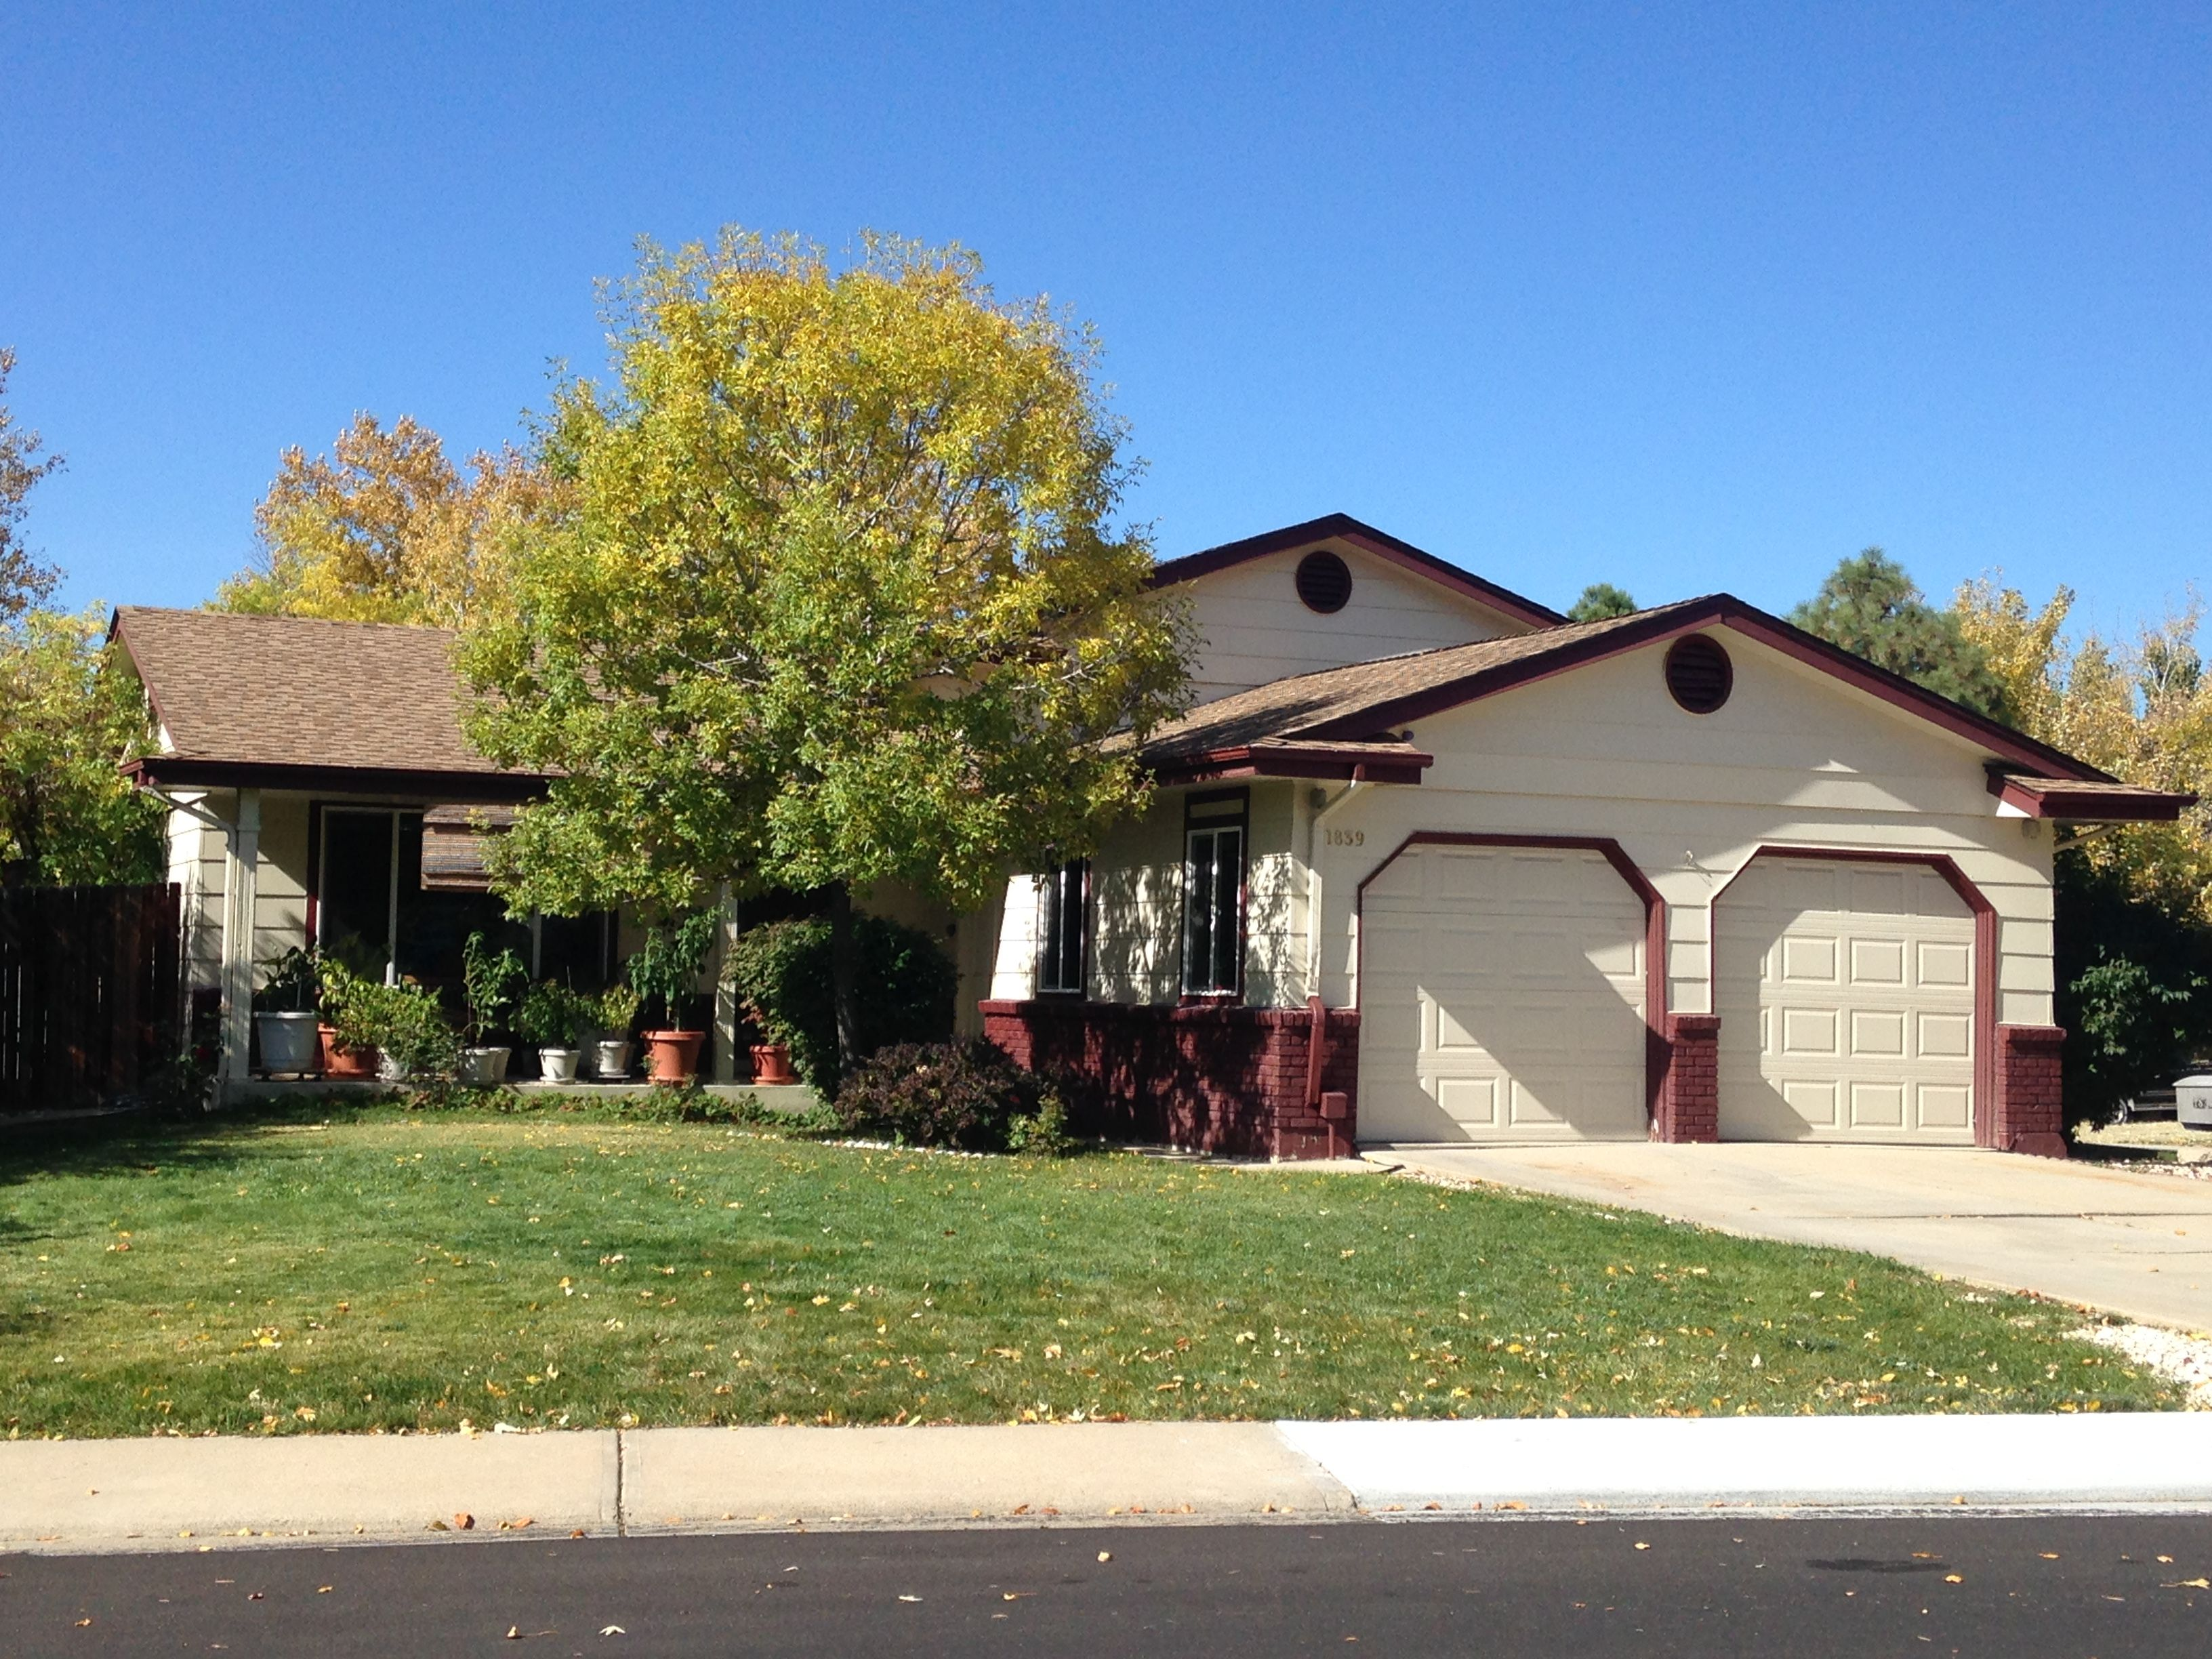 Best This Home In Longmont Has Barkwood Shingles On It From The 400 x 300